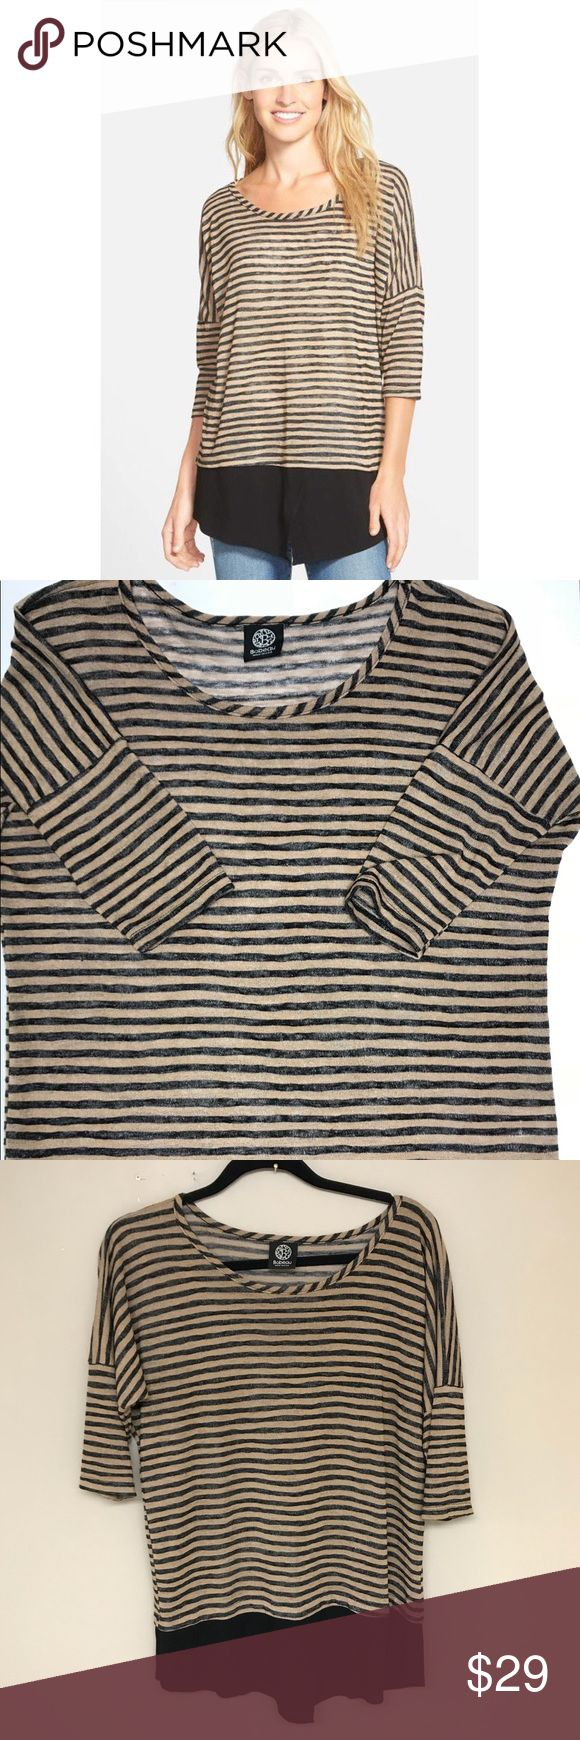 """Bobeau layered look stripe top Like new! In perfect condition!!  BOBEAU layered look striped top  Size small  A Lightweight woven inset forming a shirttail hem brings a pulled-together layered look to a striped knit top with slouchy drop- shoulder styling   Tan and black stripe   Approx measurements: length 28"""" Armpit to armpit 22"""" bobeau Tops"""